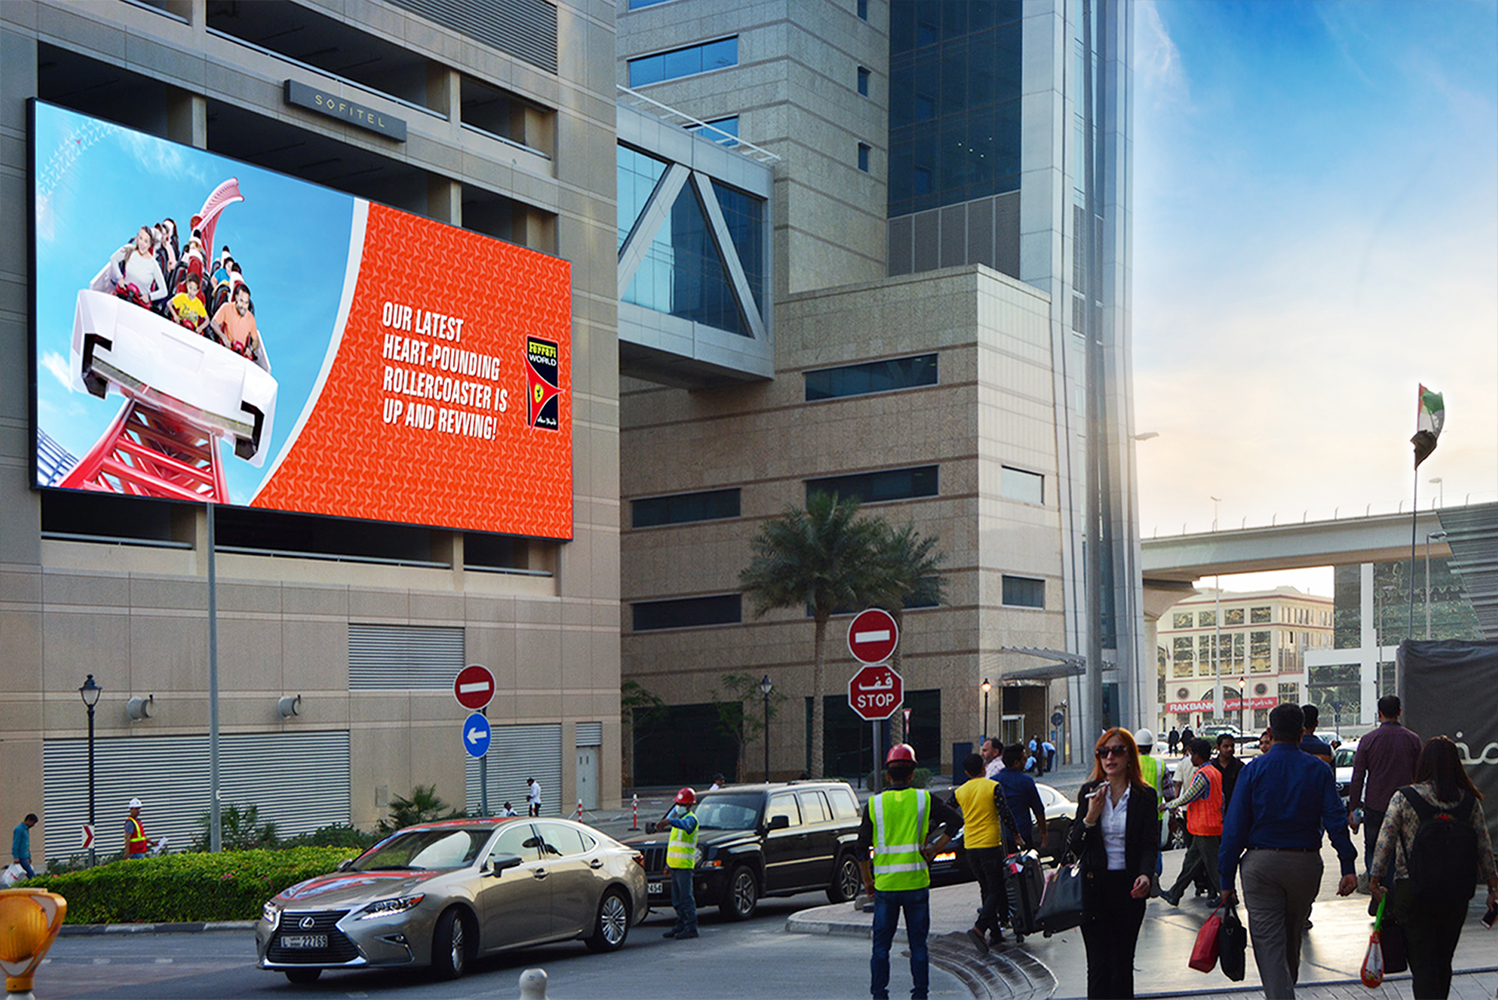 Become a landmark with LED SCREEN & CONSULTATION